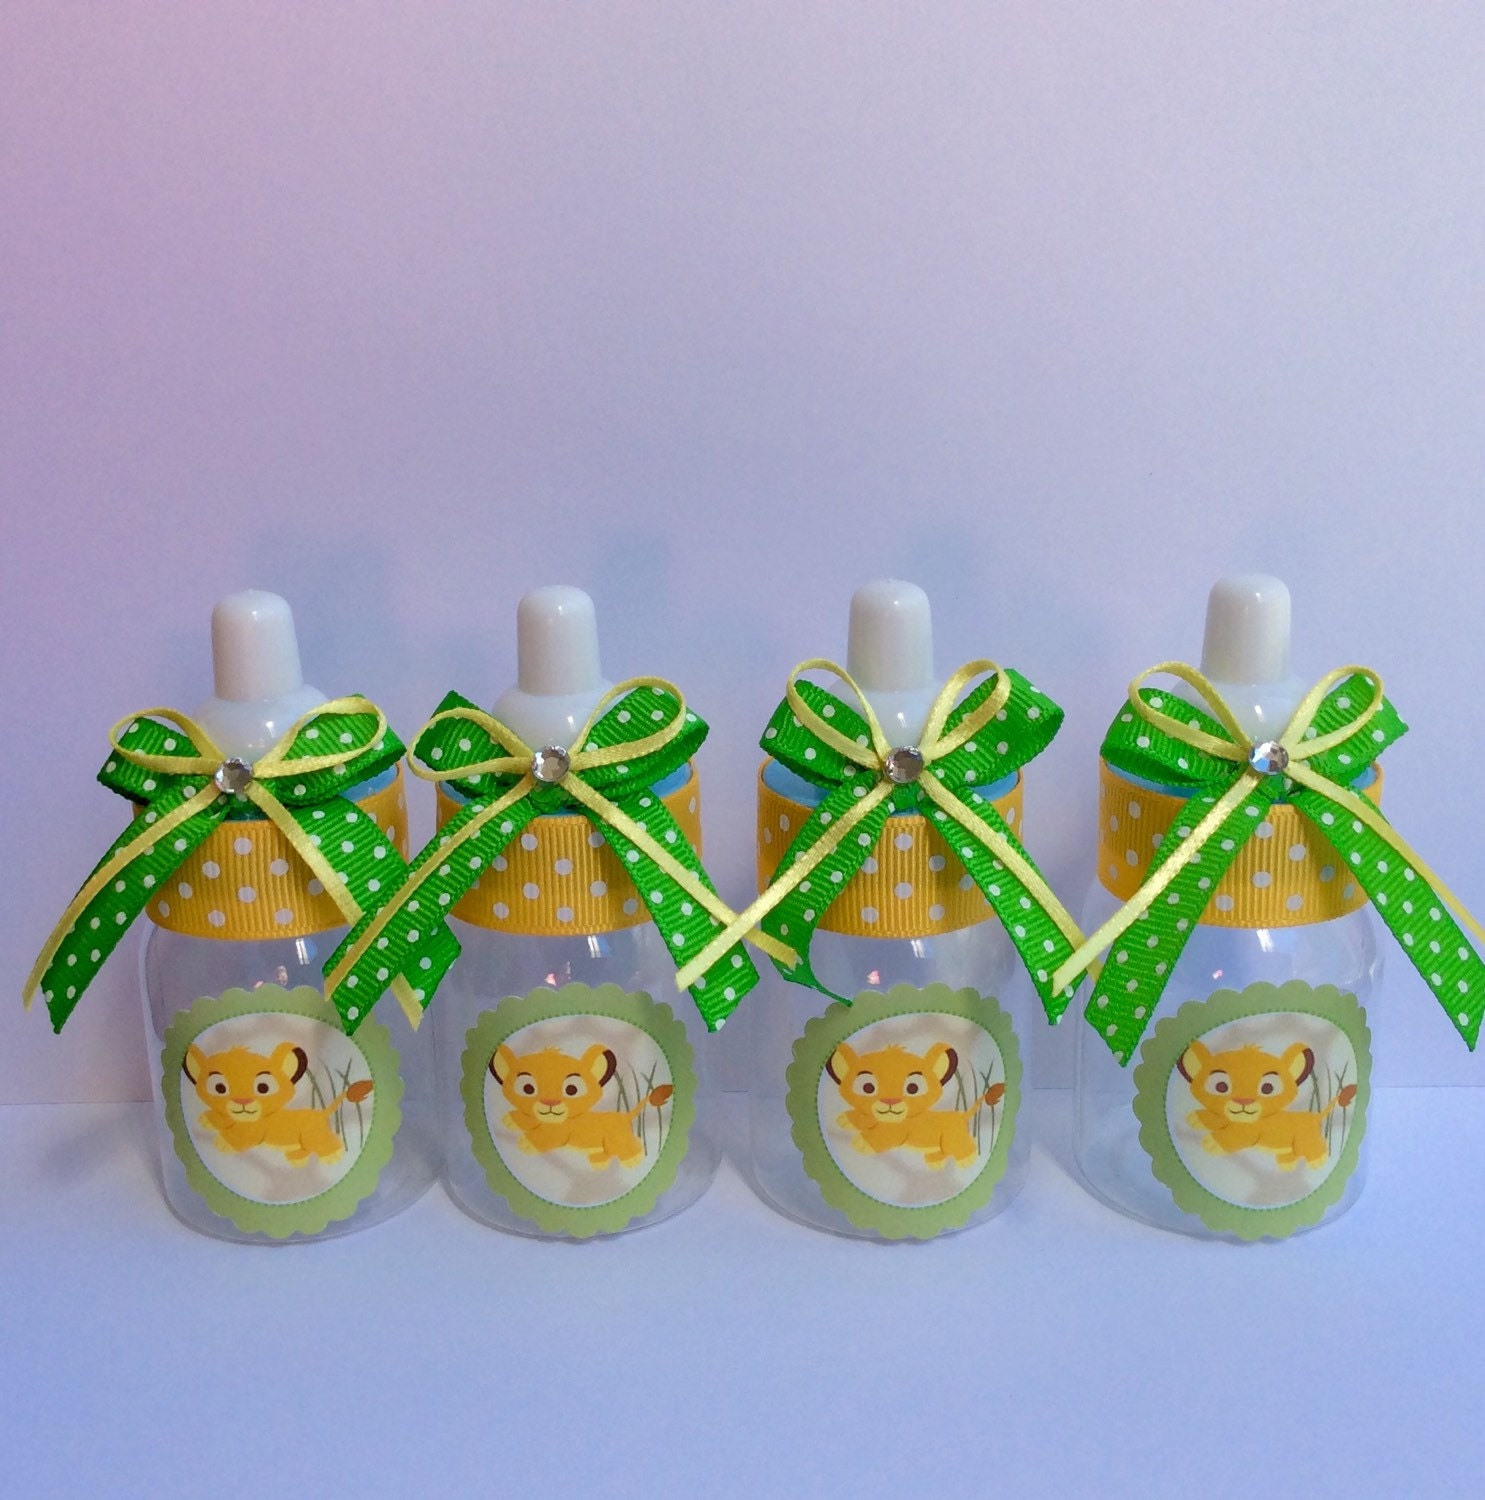 Lion Baby Shower Ideas: 12 Small 3.5 Lion King Baby Shower Baby Bottles Lion